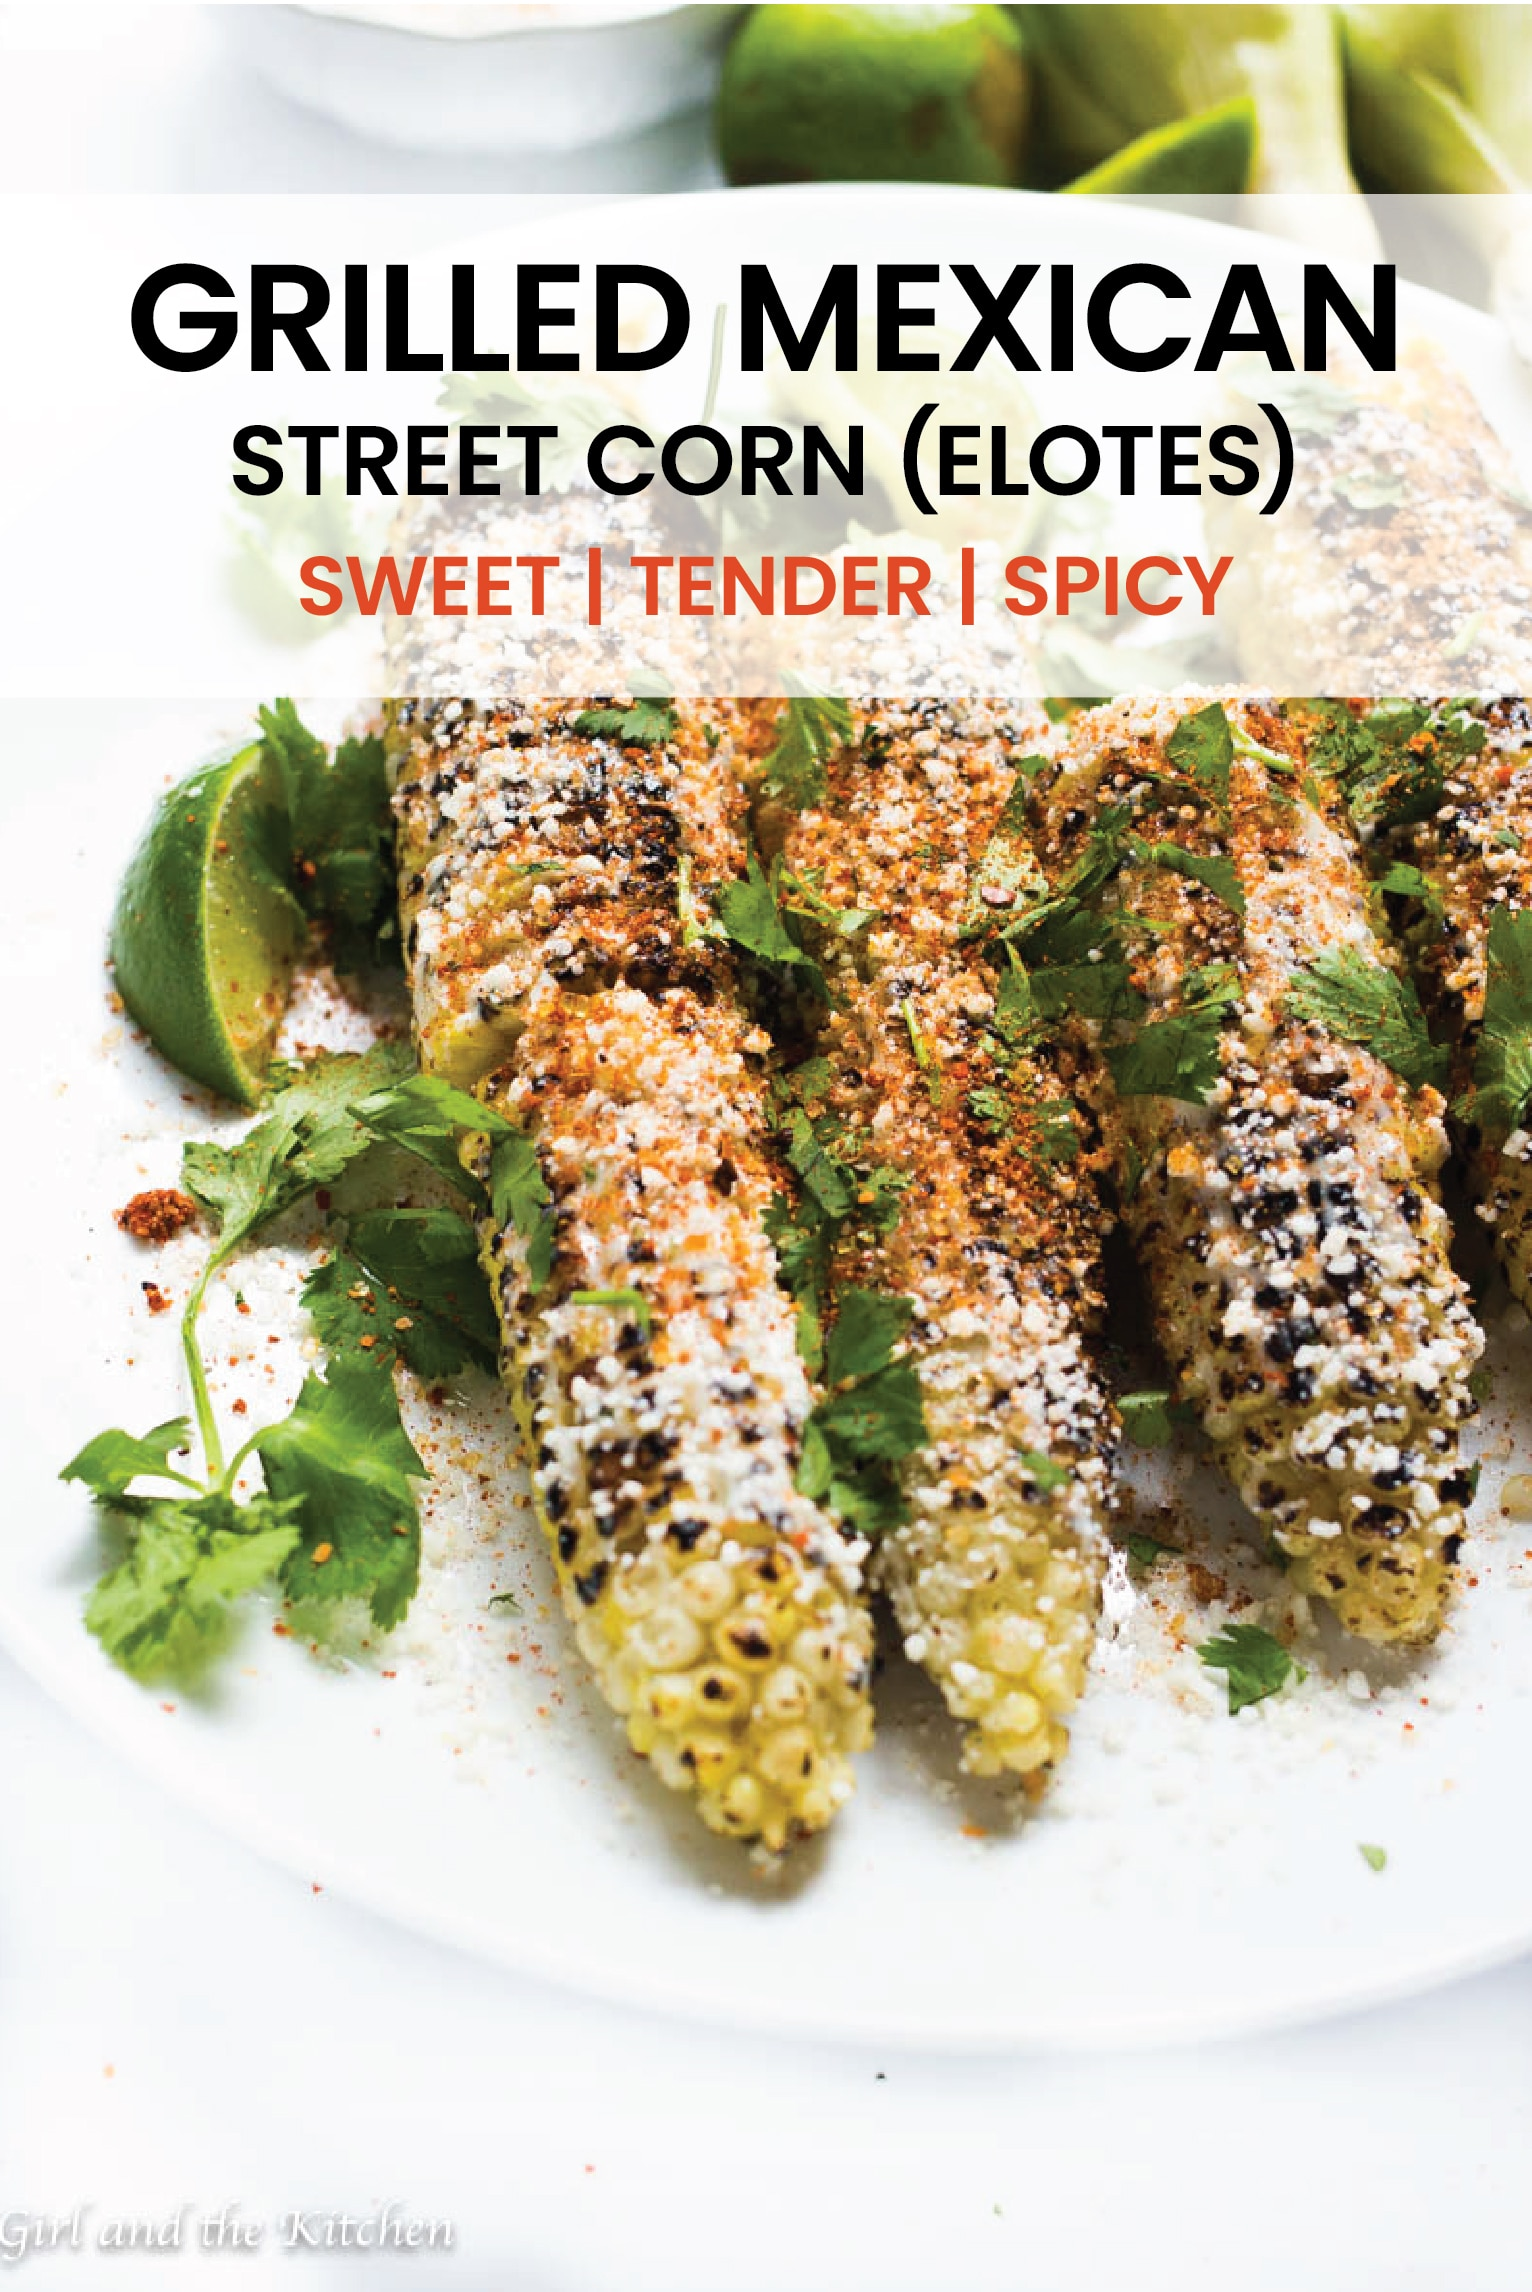 Sweet, tender and spicy! These Mexican Street Corn is all of it!  It is full of vibrant colors and bold flavors and will turn your summer BBQ into a fiesta! #sweetcorm #spicy #fiesta